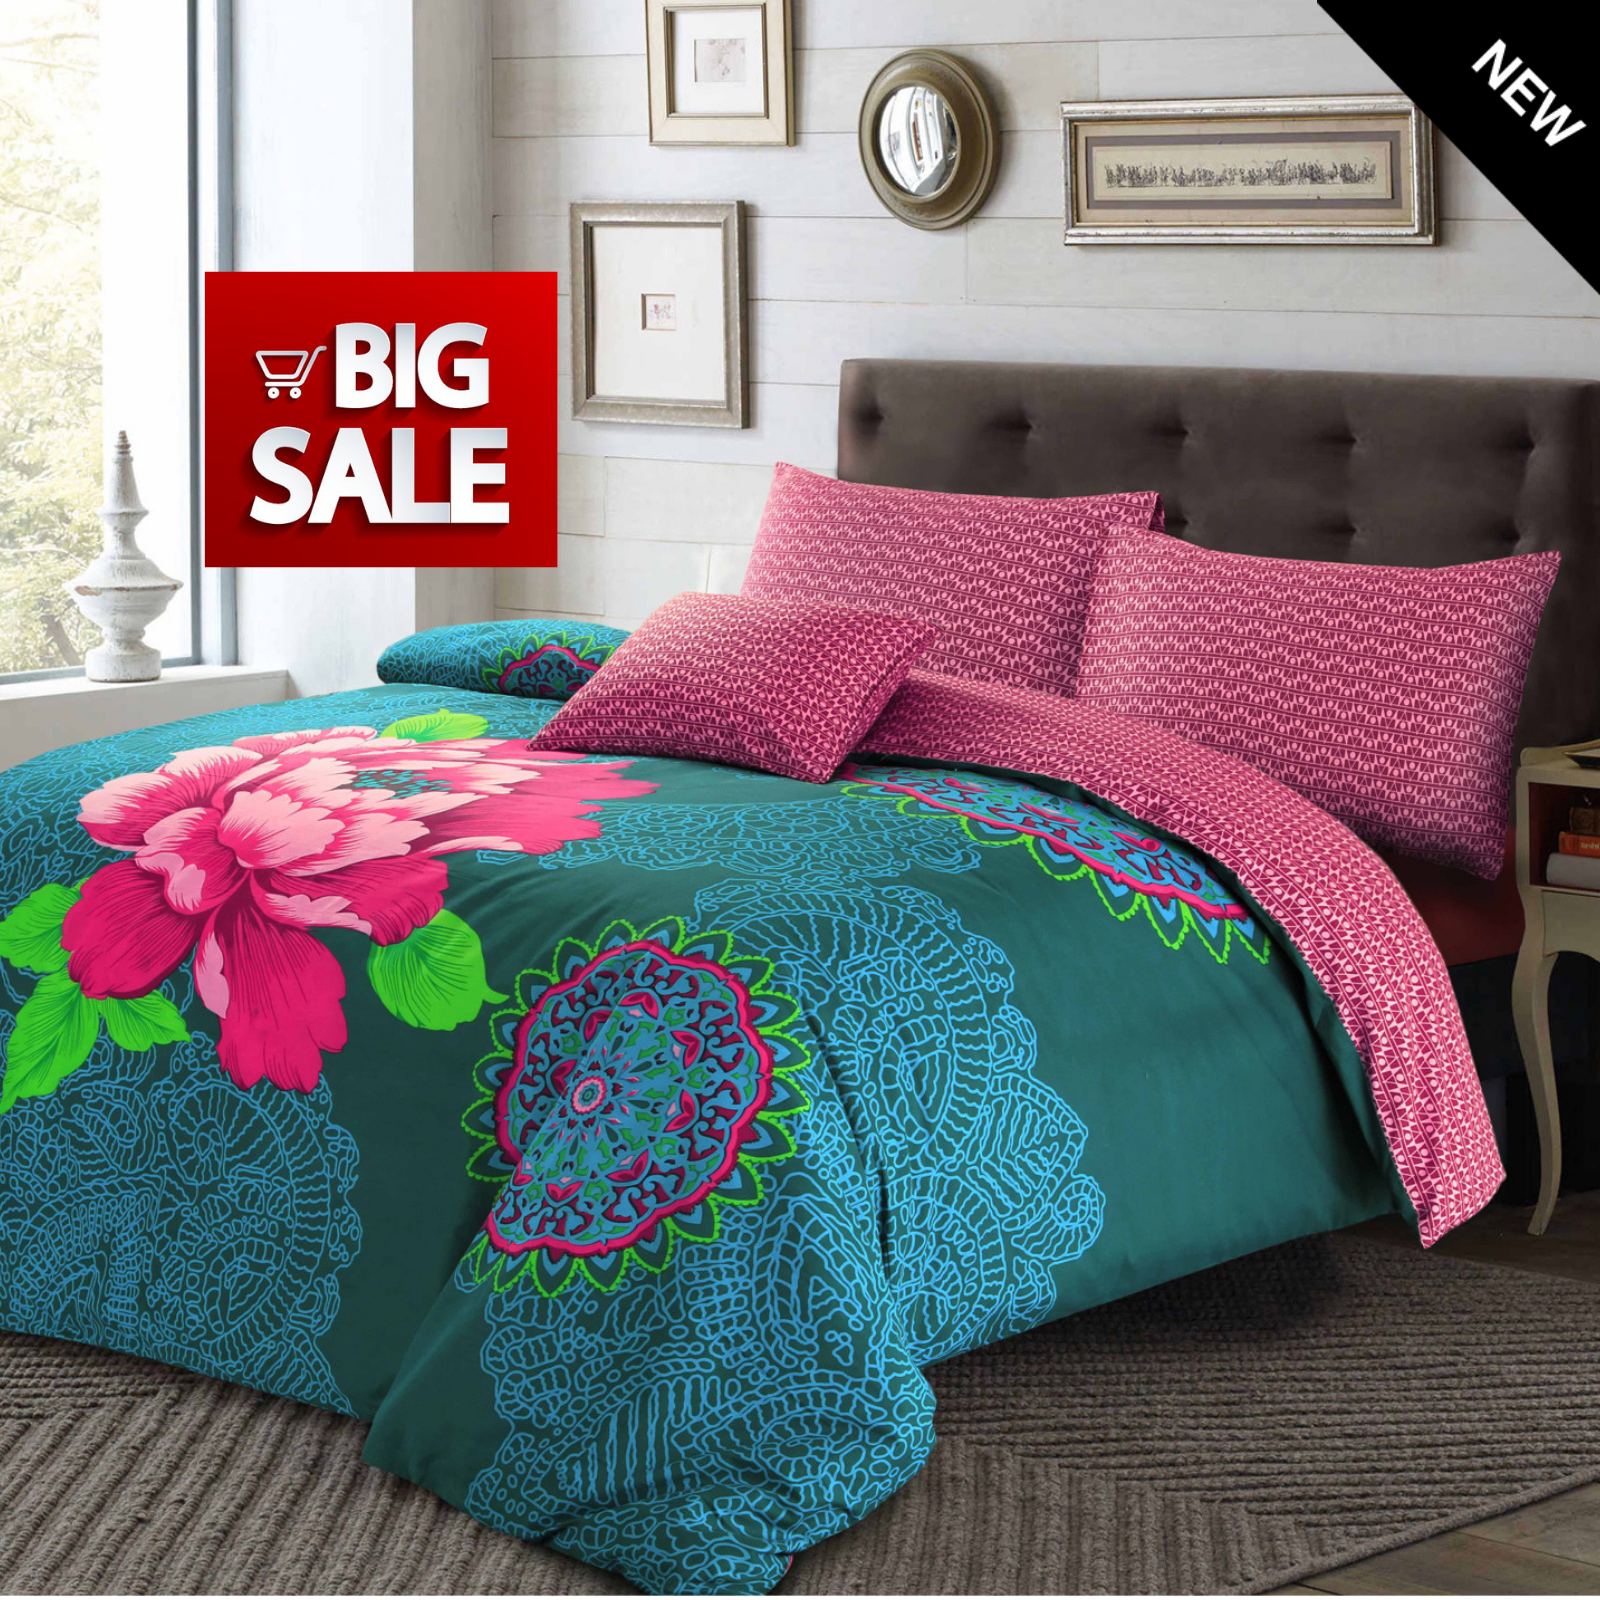 NEW Bohemian Moroccan Floral Janice Quilt Duvet Covers SALE Luxury